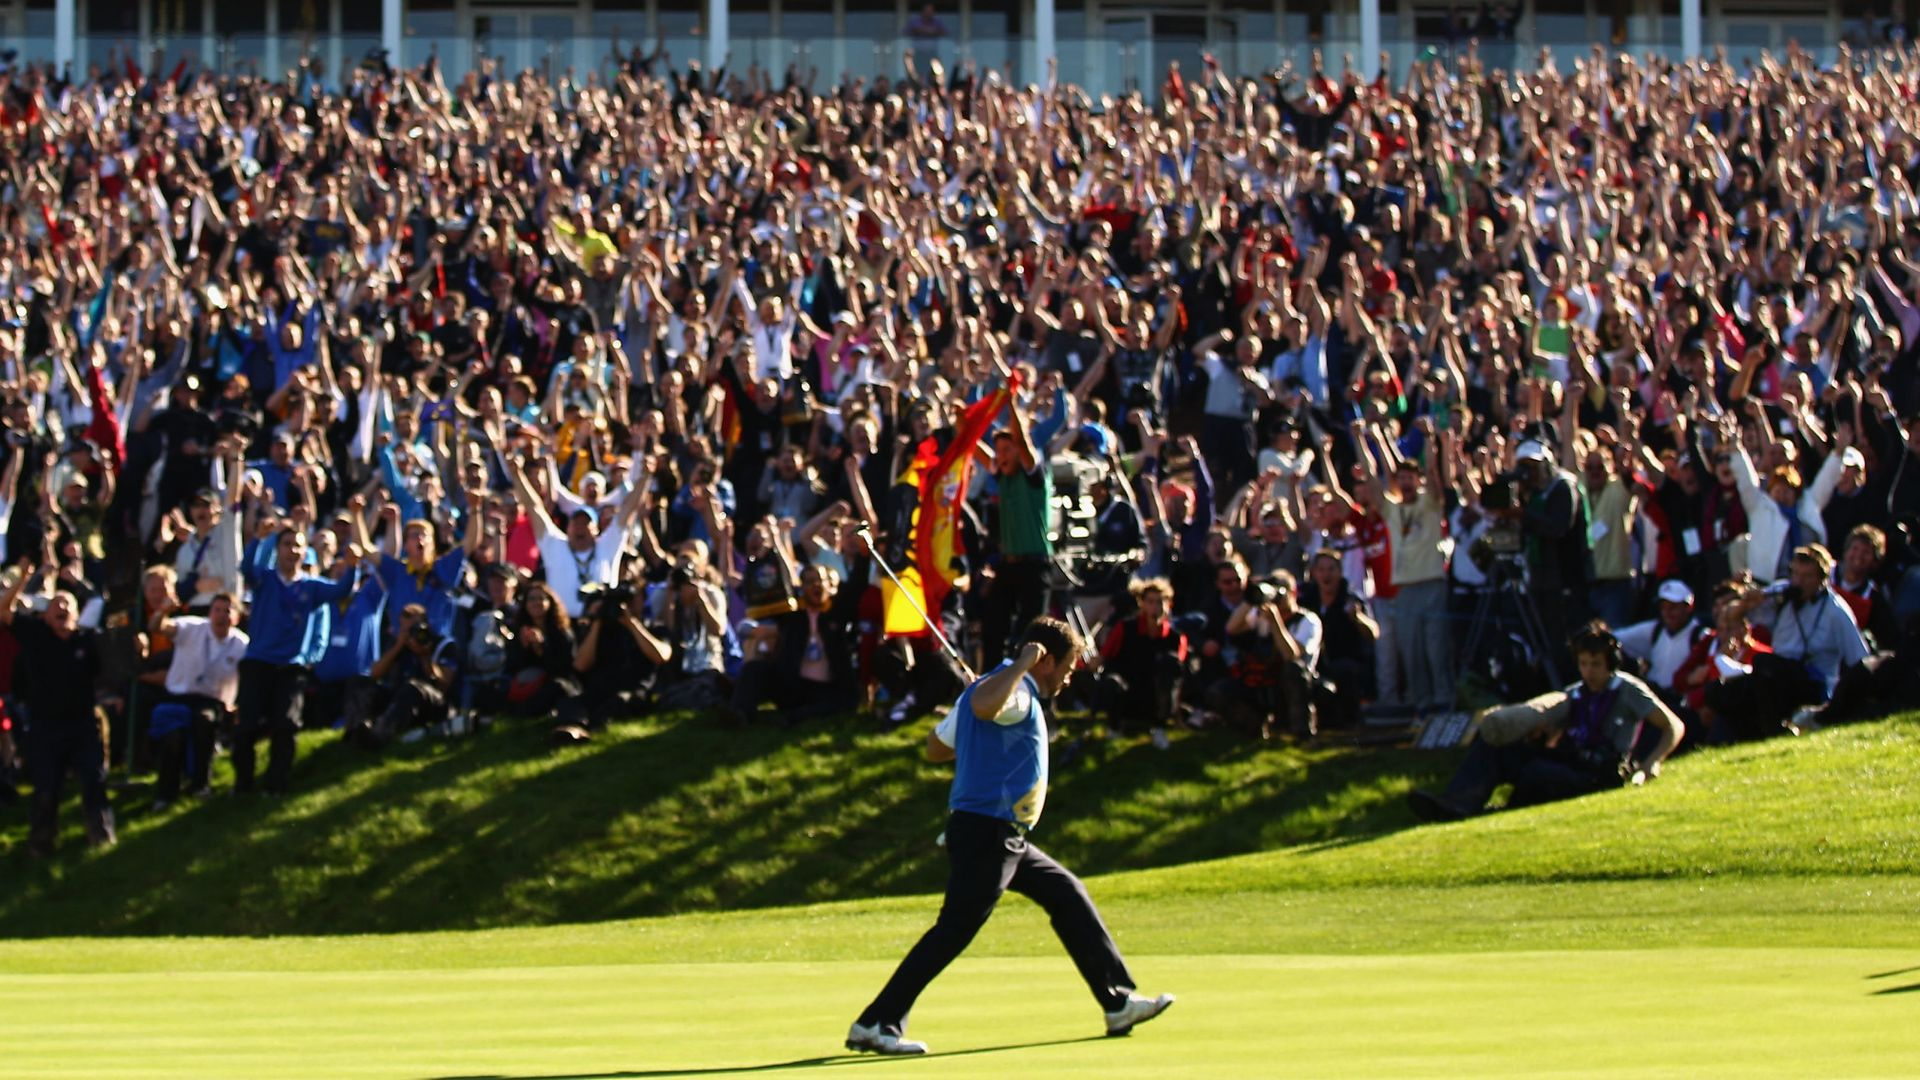 'Fans bring X Factor to Ryder Cup'